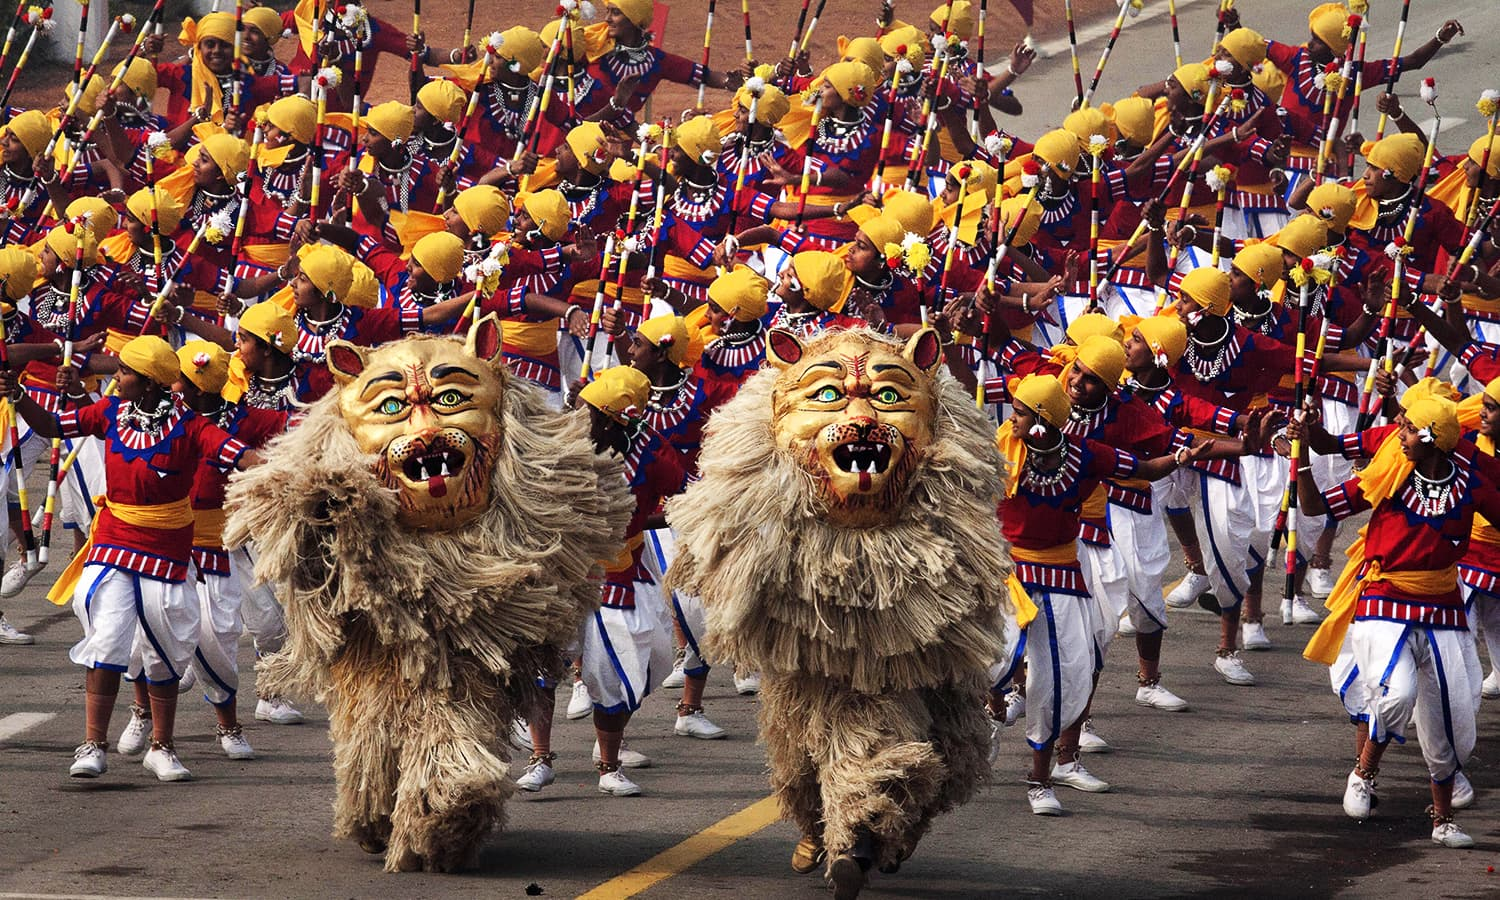 Indian school children perform a dance to show India's cultural heritage during the parade. ─ AP